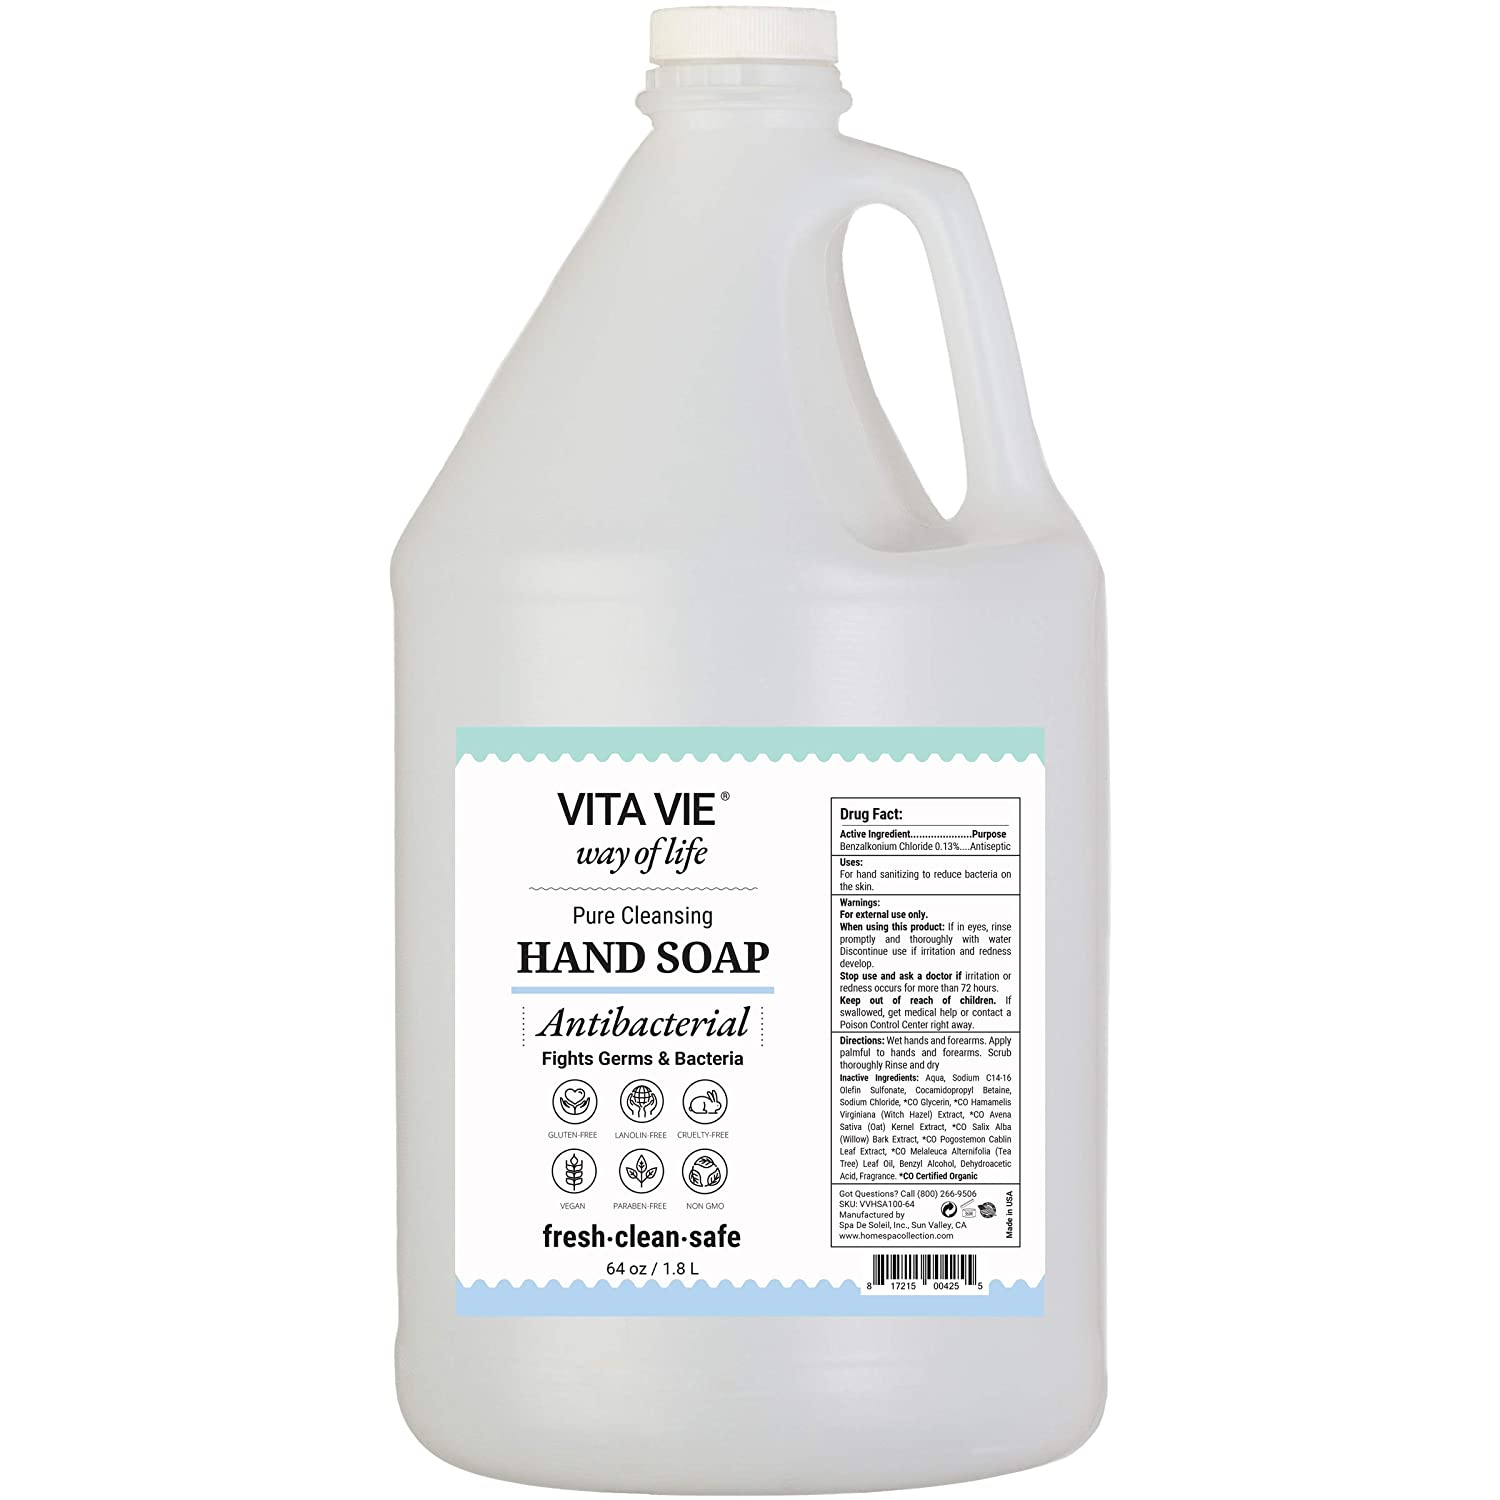 VITA VIE Antibacterial Hand Soap, 64 oz - Cleansing Liquid Hand Soap Refill - Alcohol-free, Paraben-free, Sulfate-free, Cruelty-free - Made in America - Ideal for Home, Office, Schools, Restaurant, Events, Kitchen, Restroom, Gym, Day Care